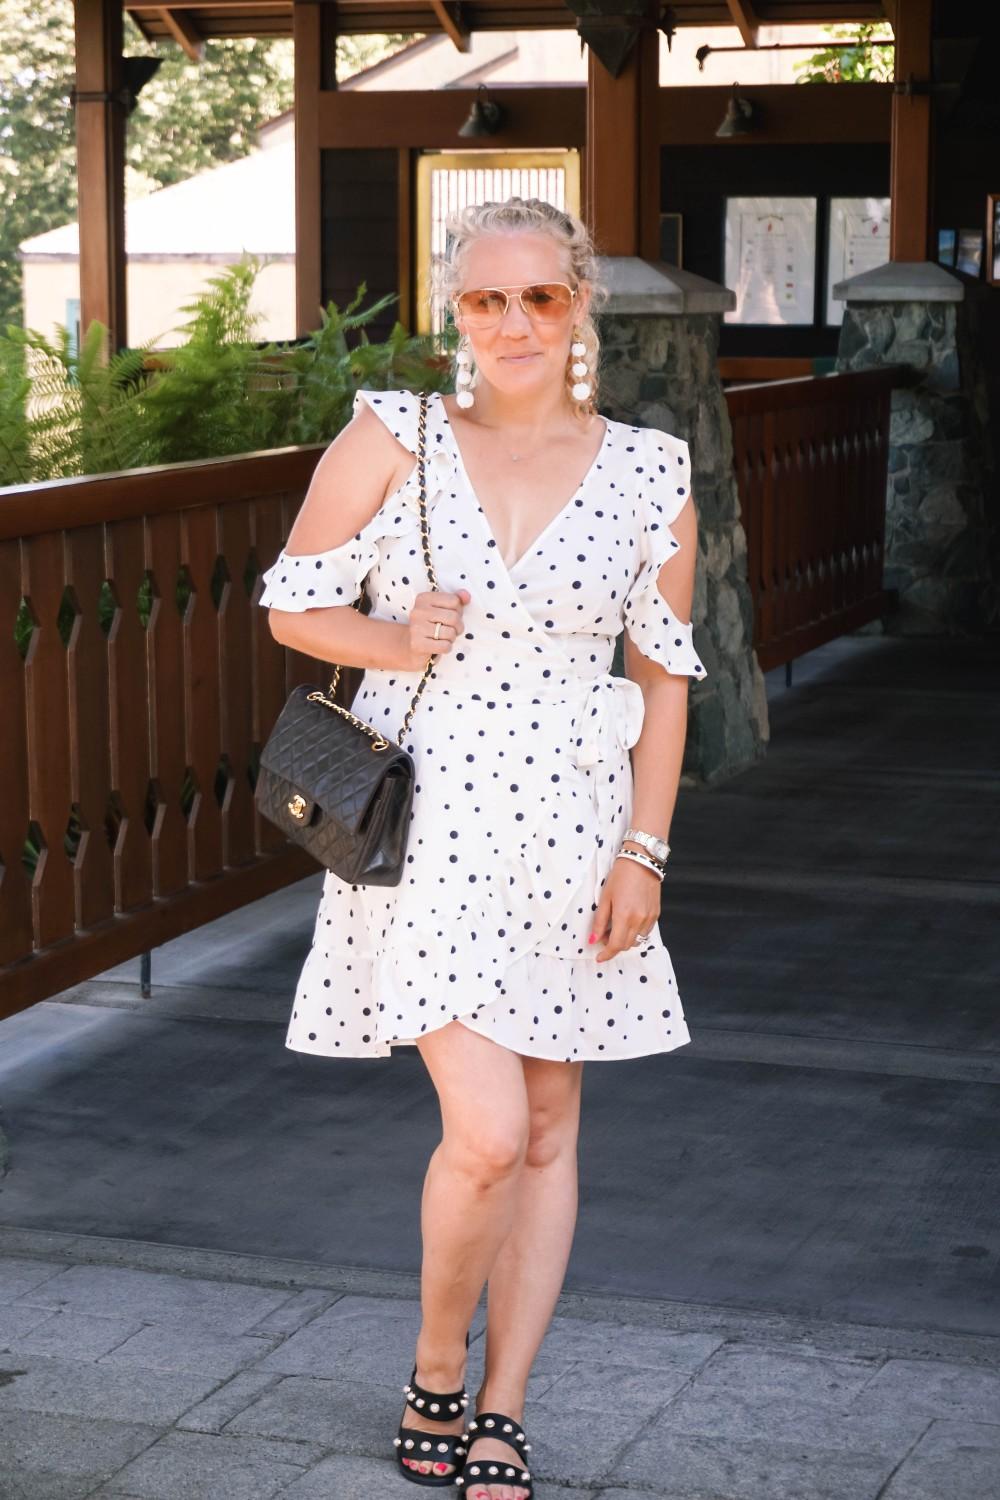 Three Ways to Wear Polka Dots-Polka Dot Outfits-Outfit Inspiration-Borrowed by Design-Polka Dot Wrap Dress-Faux Pearl Sandals-Have Need Want 9